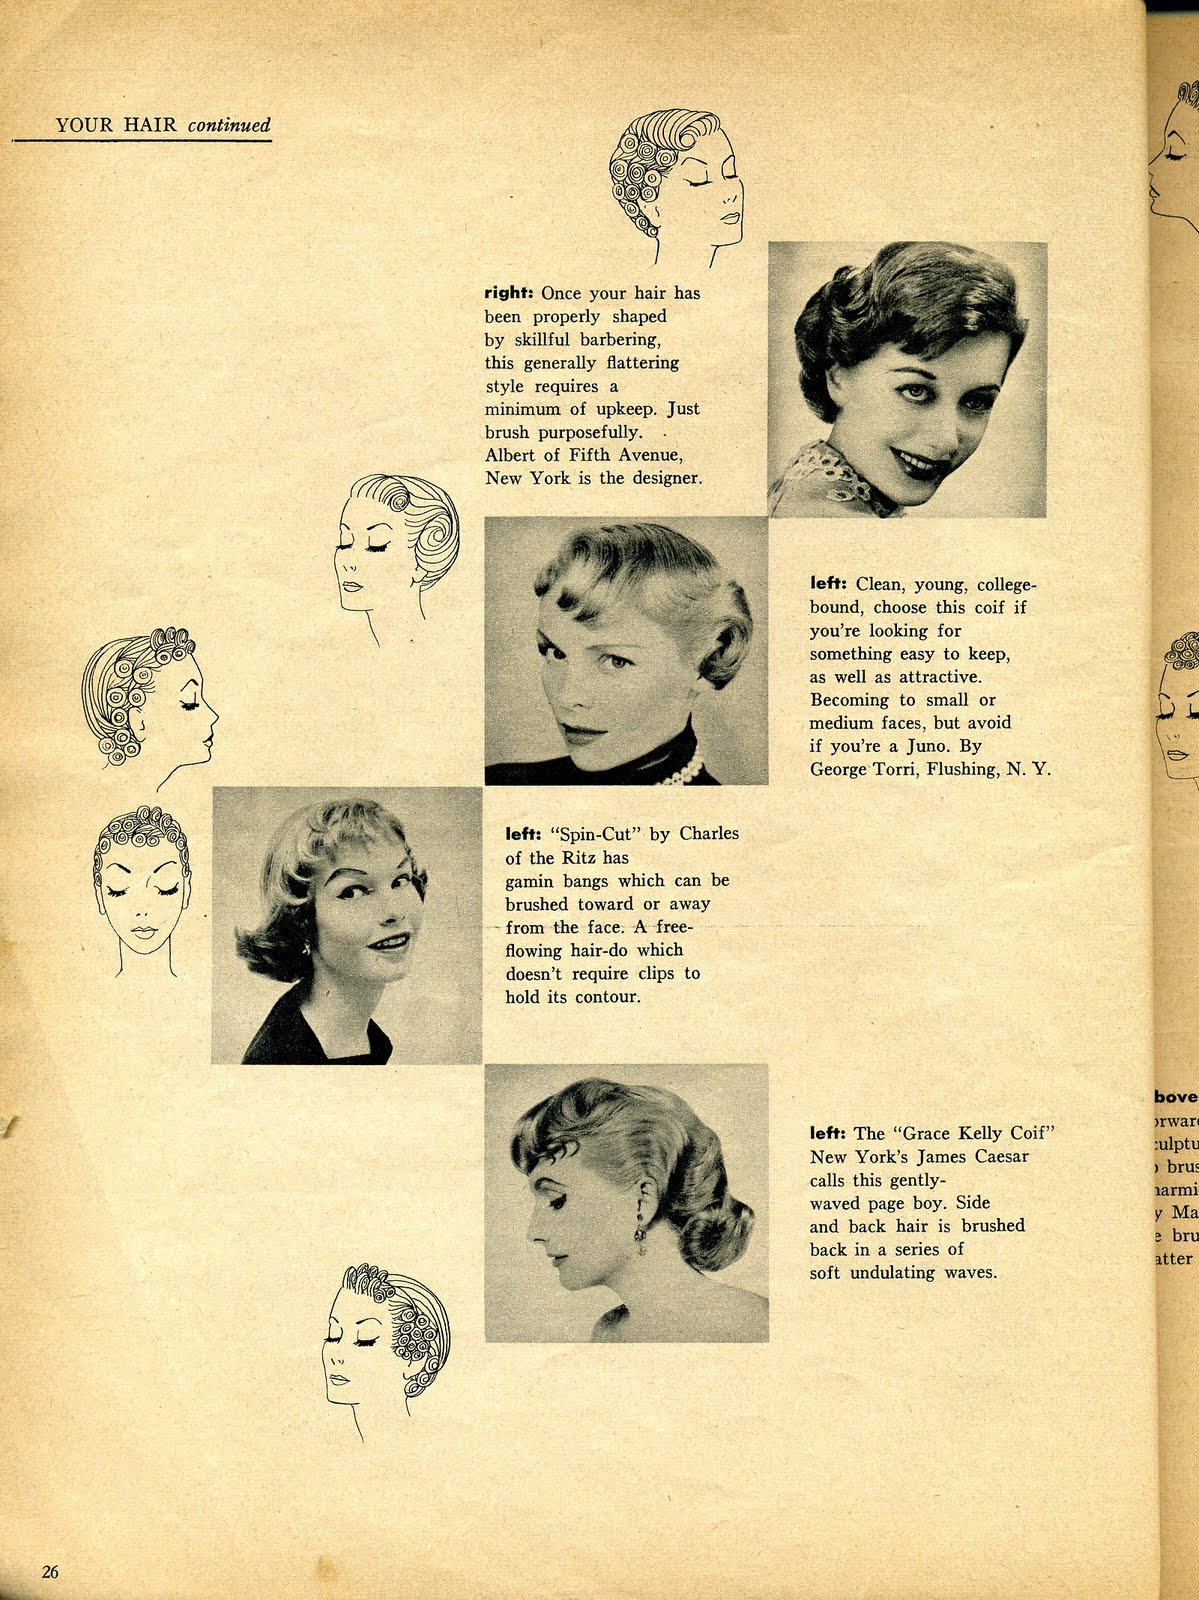 Beauty is a thing of the past: Your Hair: These Coifs are ...